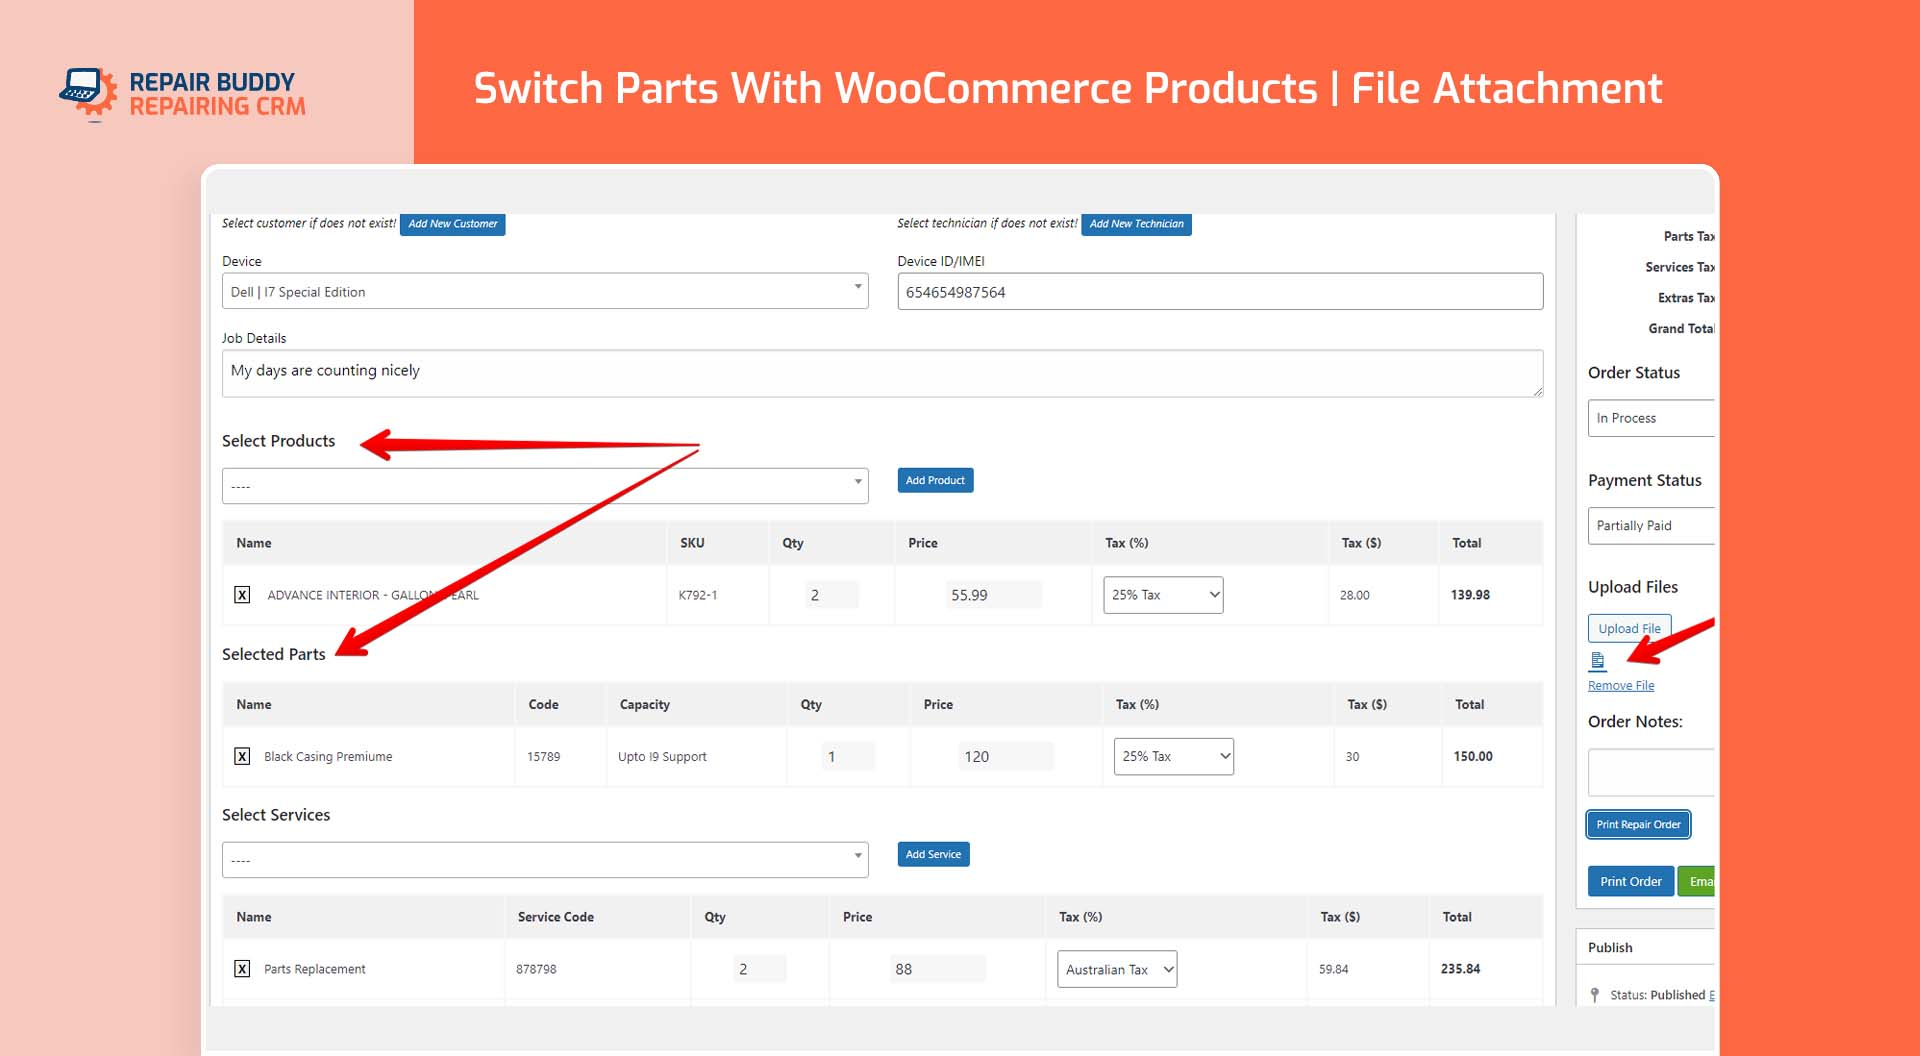 Very easy to swtich between parts and WooCommerce products